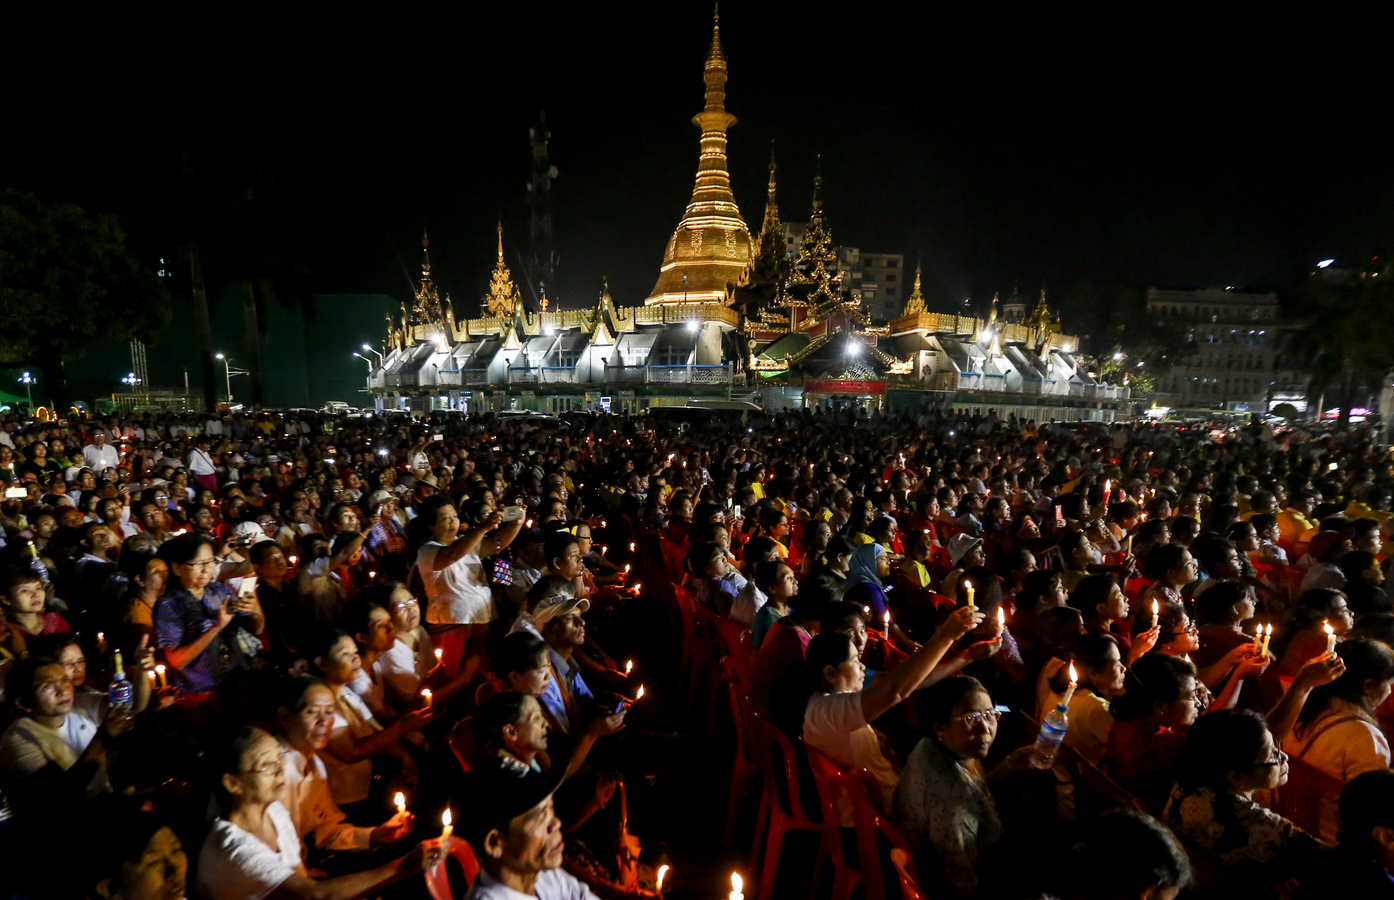 People hold candles during an Interreligious Gathering of Prayer for Peace in Yangon, Myanmar, Oct. 31 (CNS photo/Lynn Bo Bo, EPA).